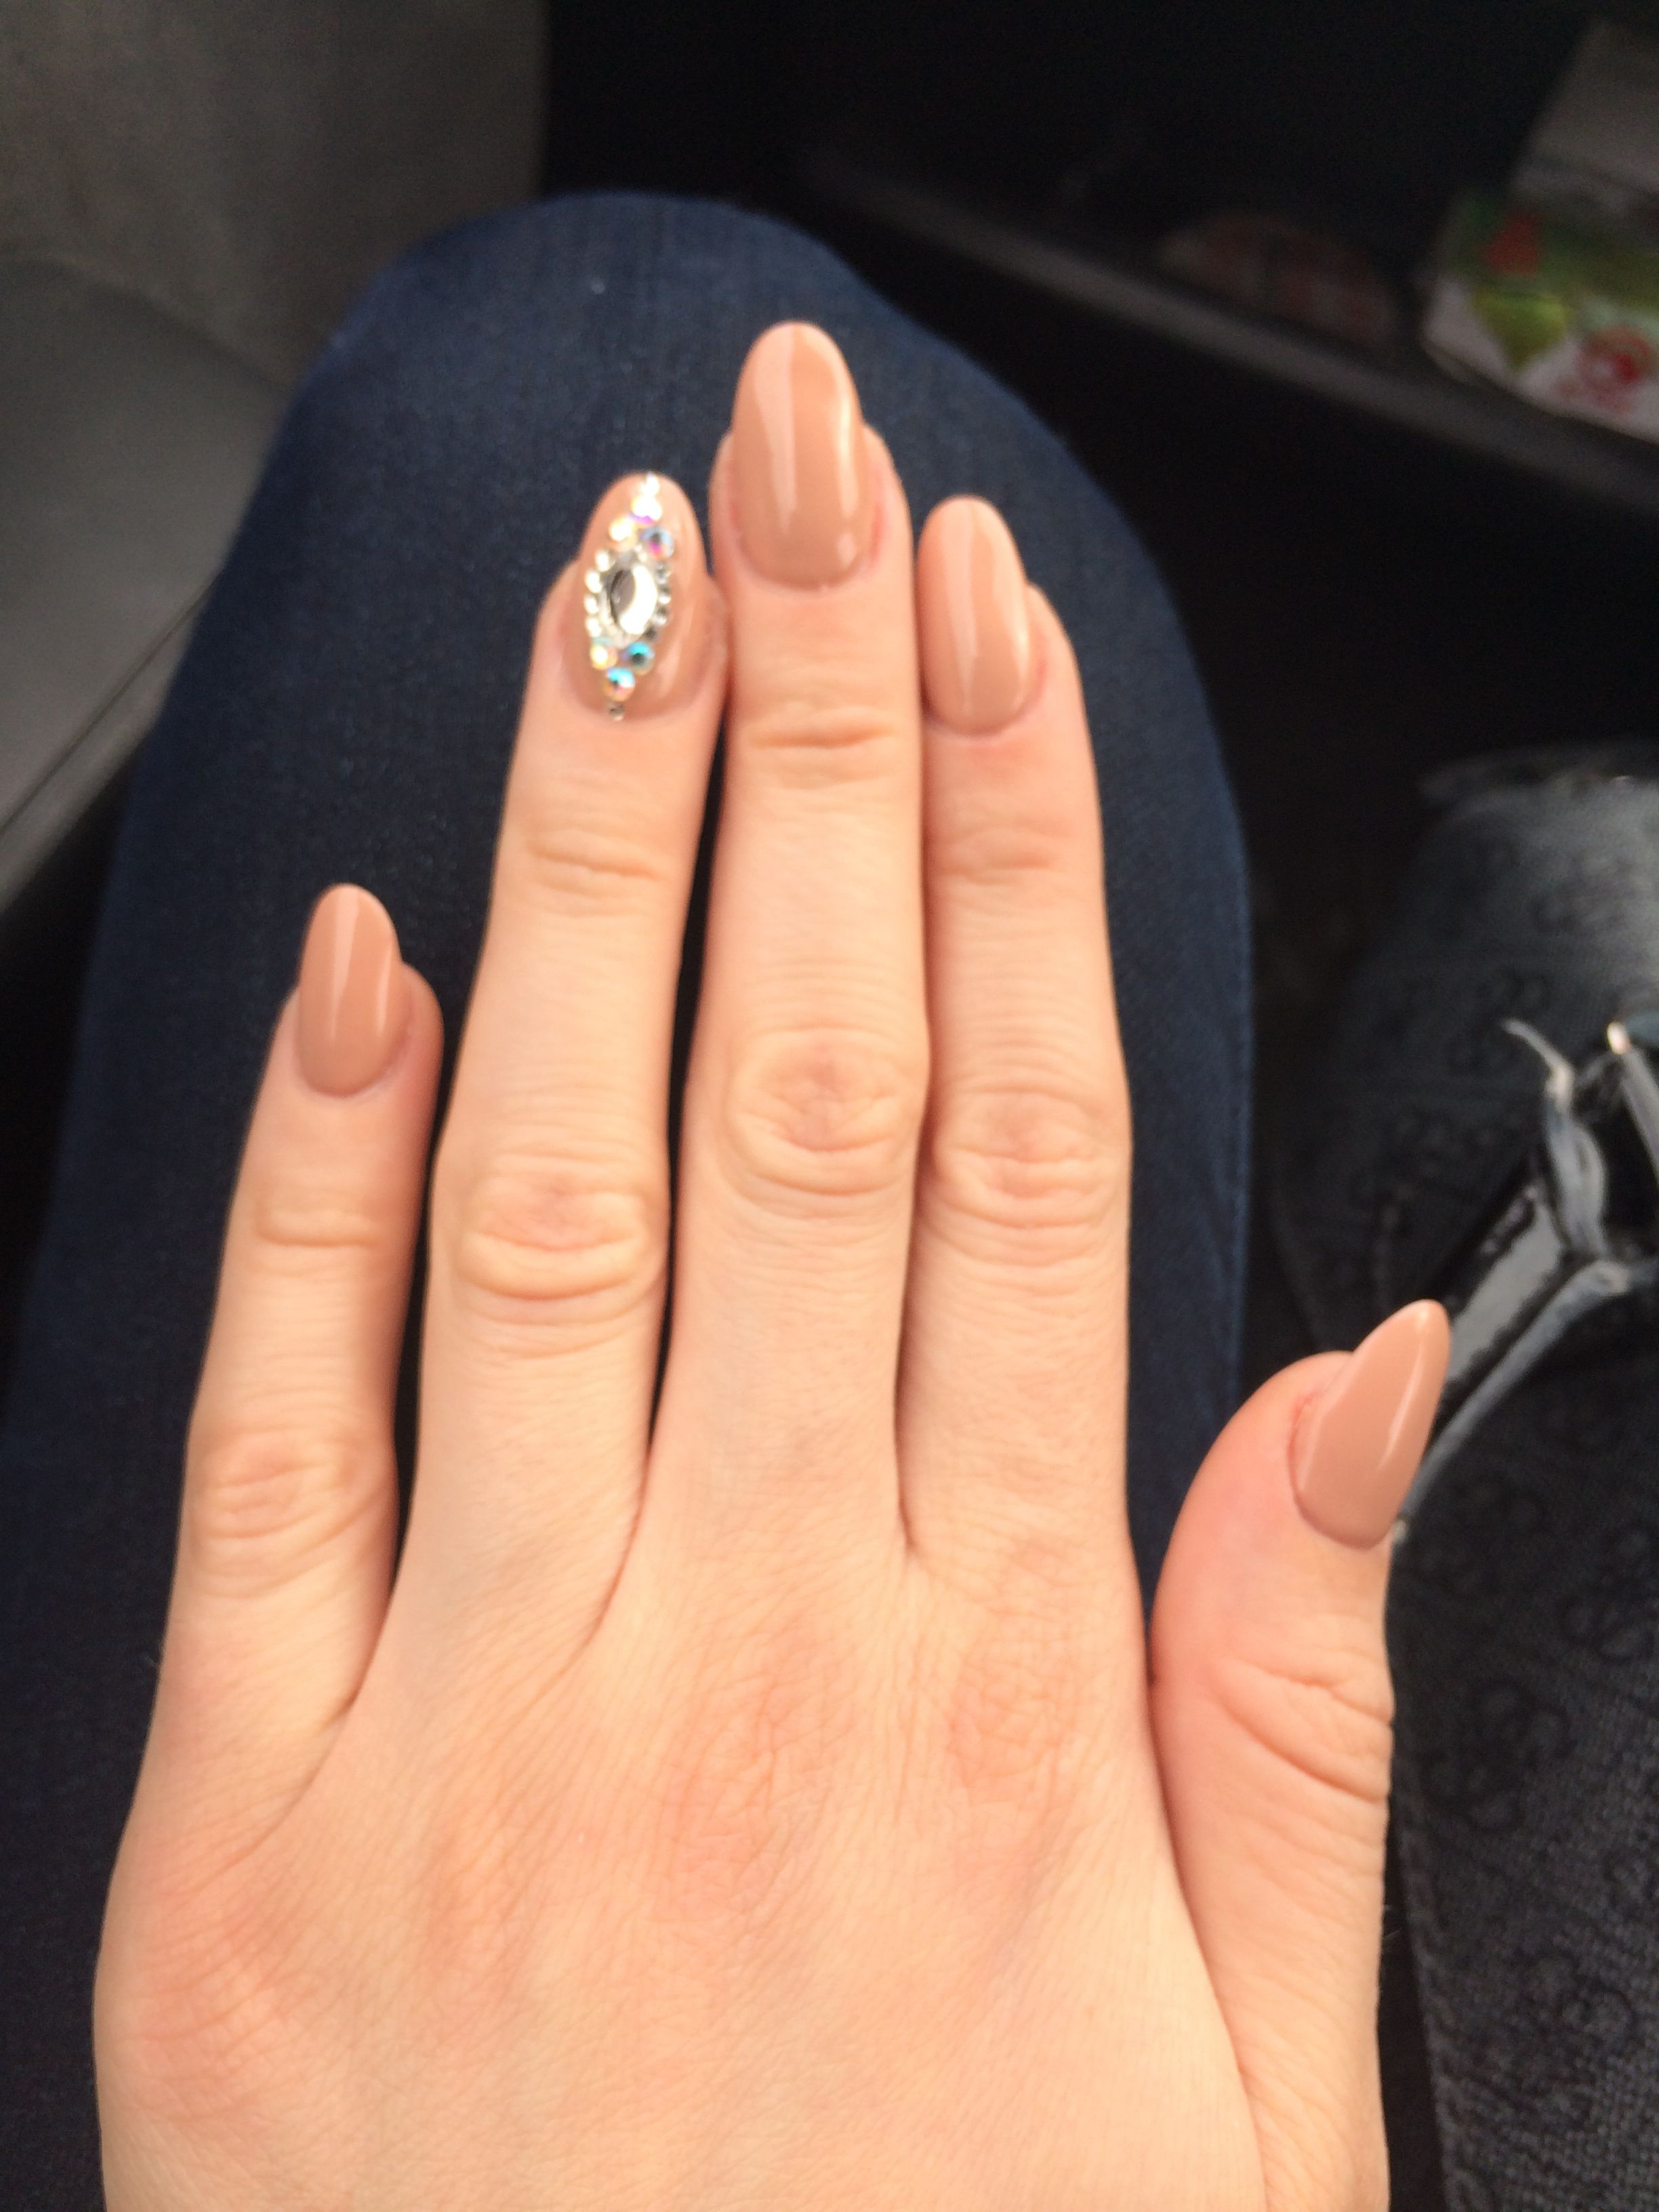 Acrylic nails, beige nails with diamond, oval nails, beige nail ...